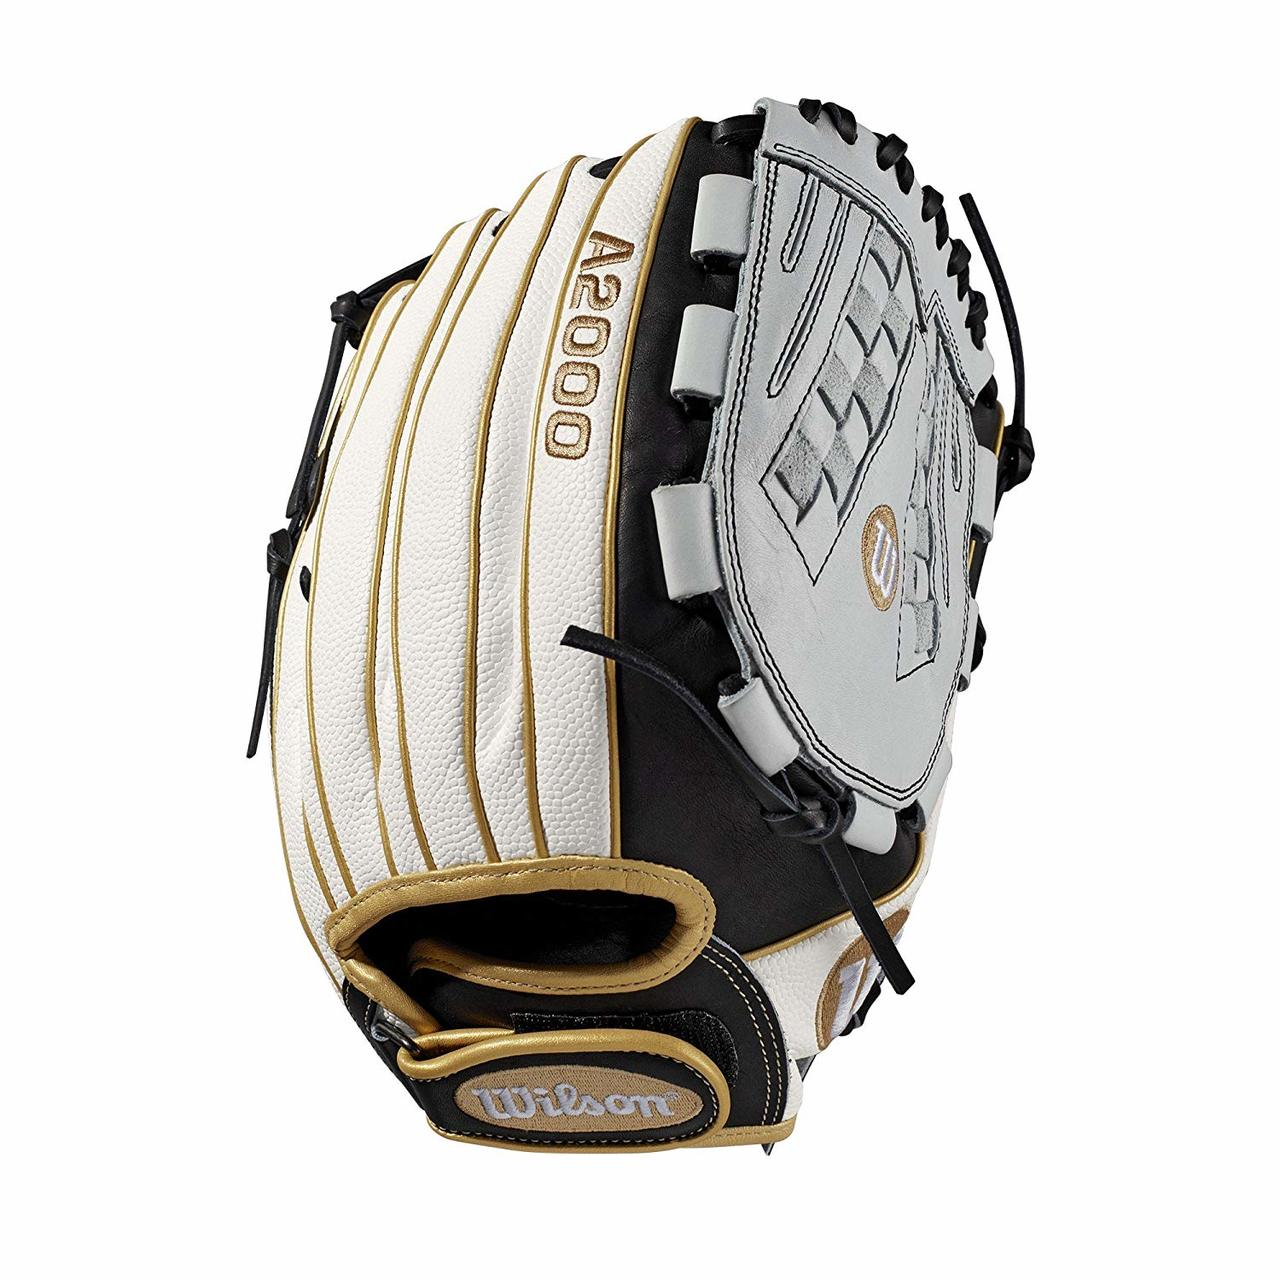 wilson-a2000-fast-pitch-softball-glove-12-5-right-hand-throw-a20rf19v125ss WTA20RF19V125SS-RightHandThrow  887768702151 Outfield model; fast pitch-specific model; Victory web Comfort Velcro wrist closure